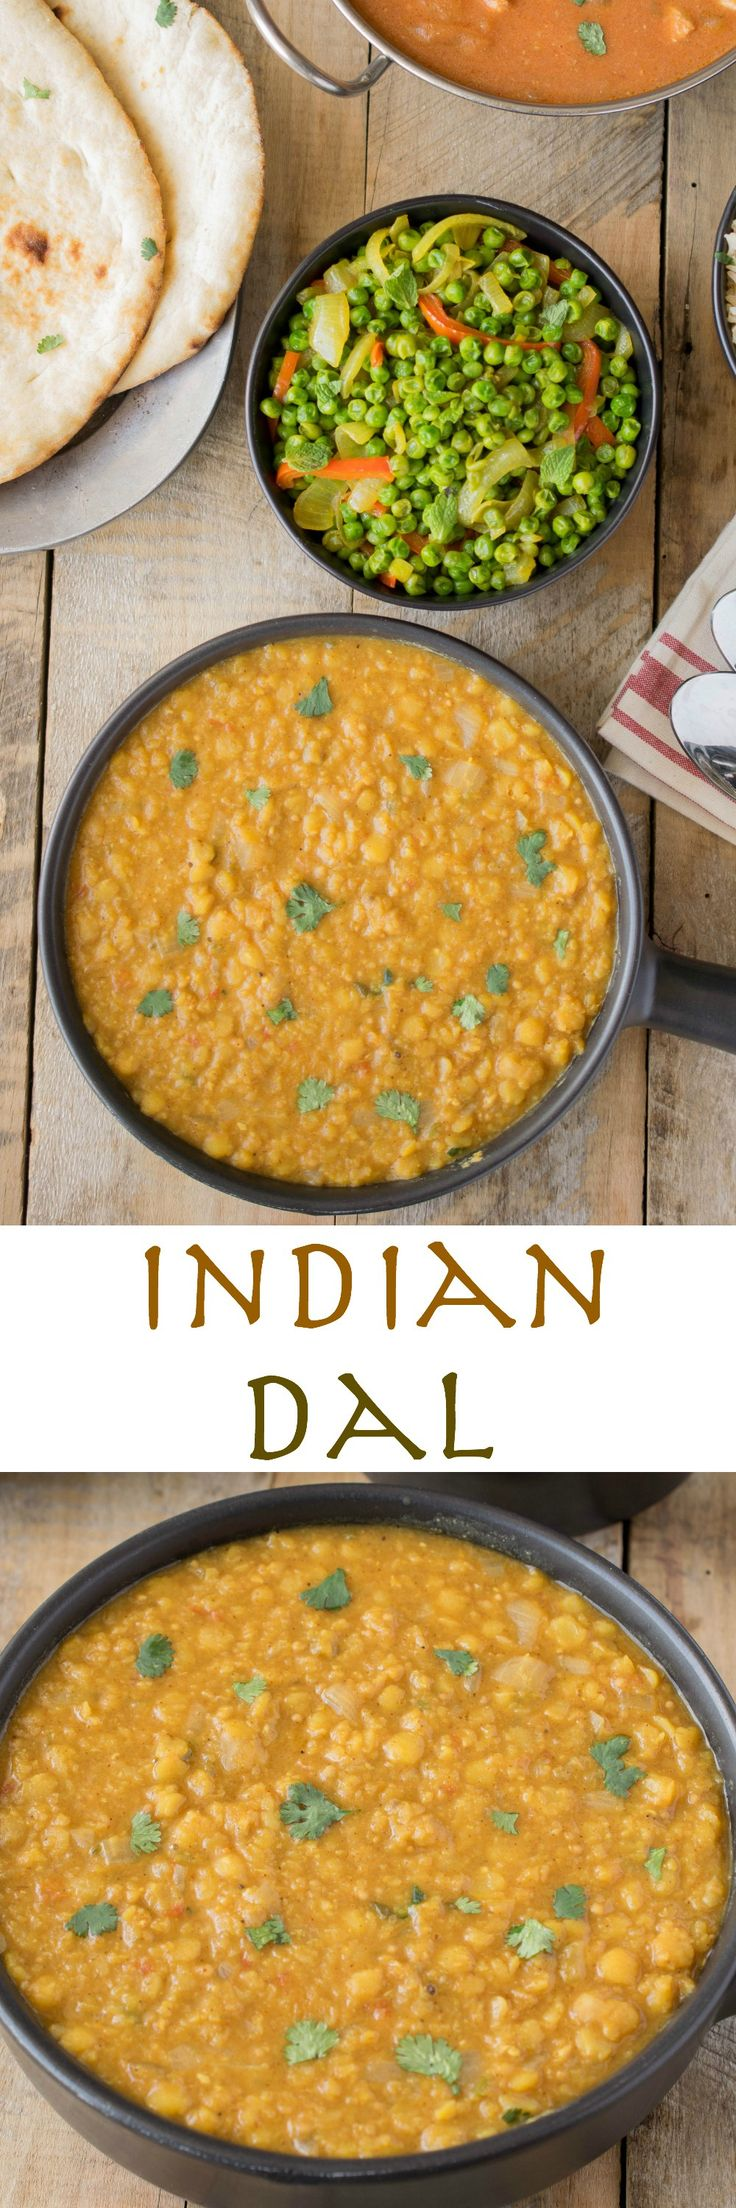 443 best indian cuisine images on pinterest indian cuisine indian dal is an easy and very flavorful vegetarian side dish made of yellow lentils tomato jalapeo and lots of spices forumfinder Gallery